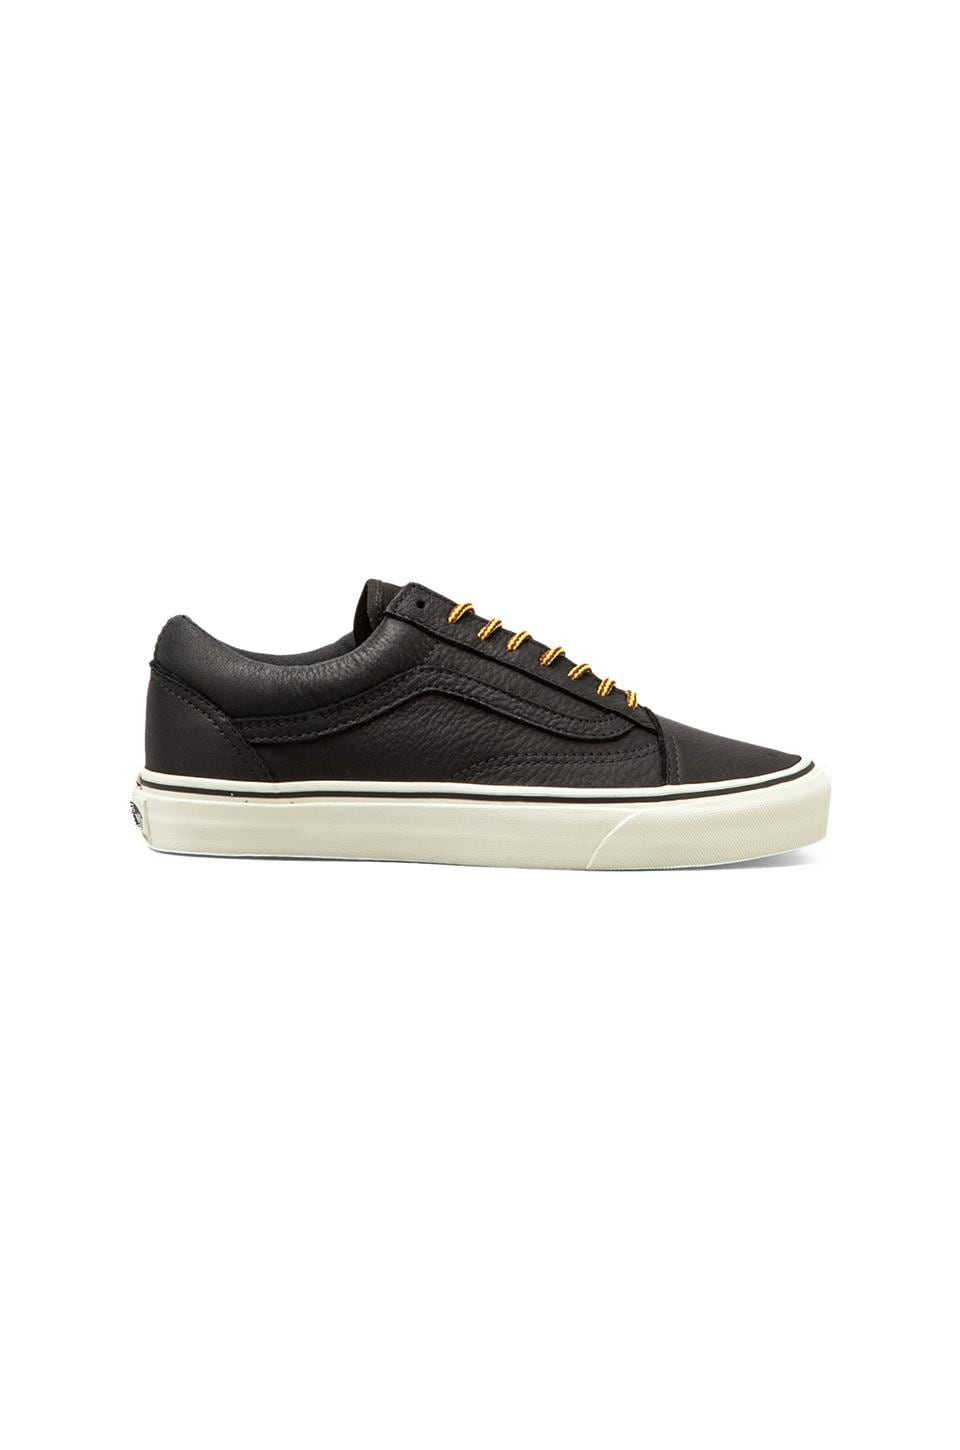 Vans California Old Skool Re-Issue Leather in Black/Vanilla Ice